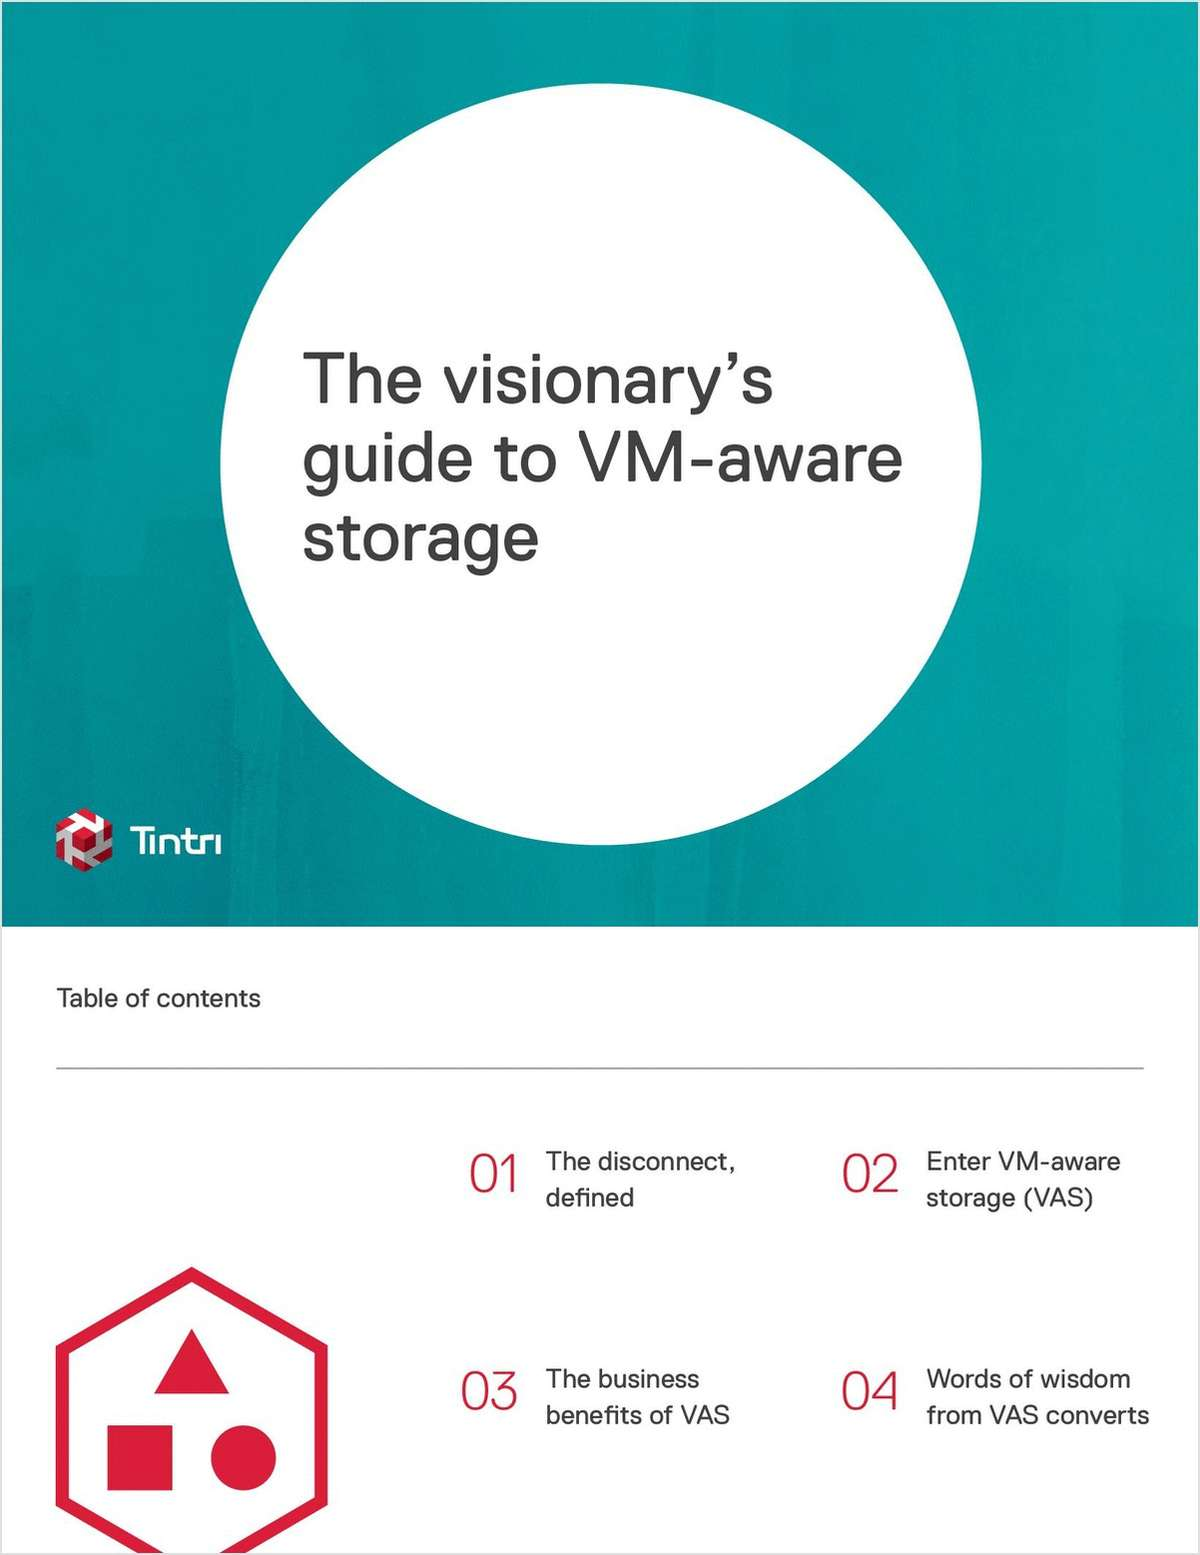 The Visionary's Guide to VM-aware Storage